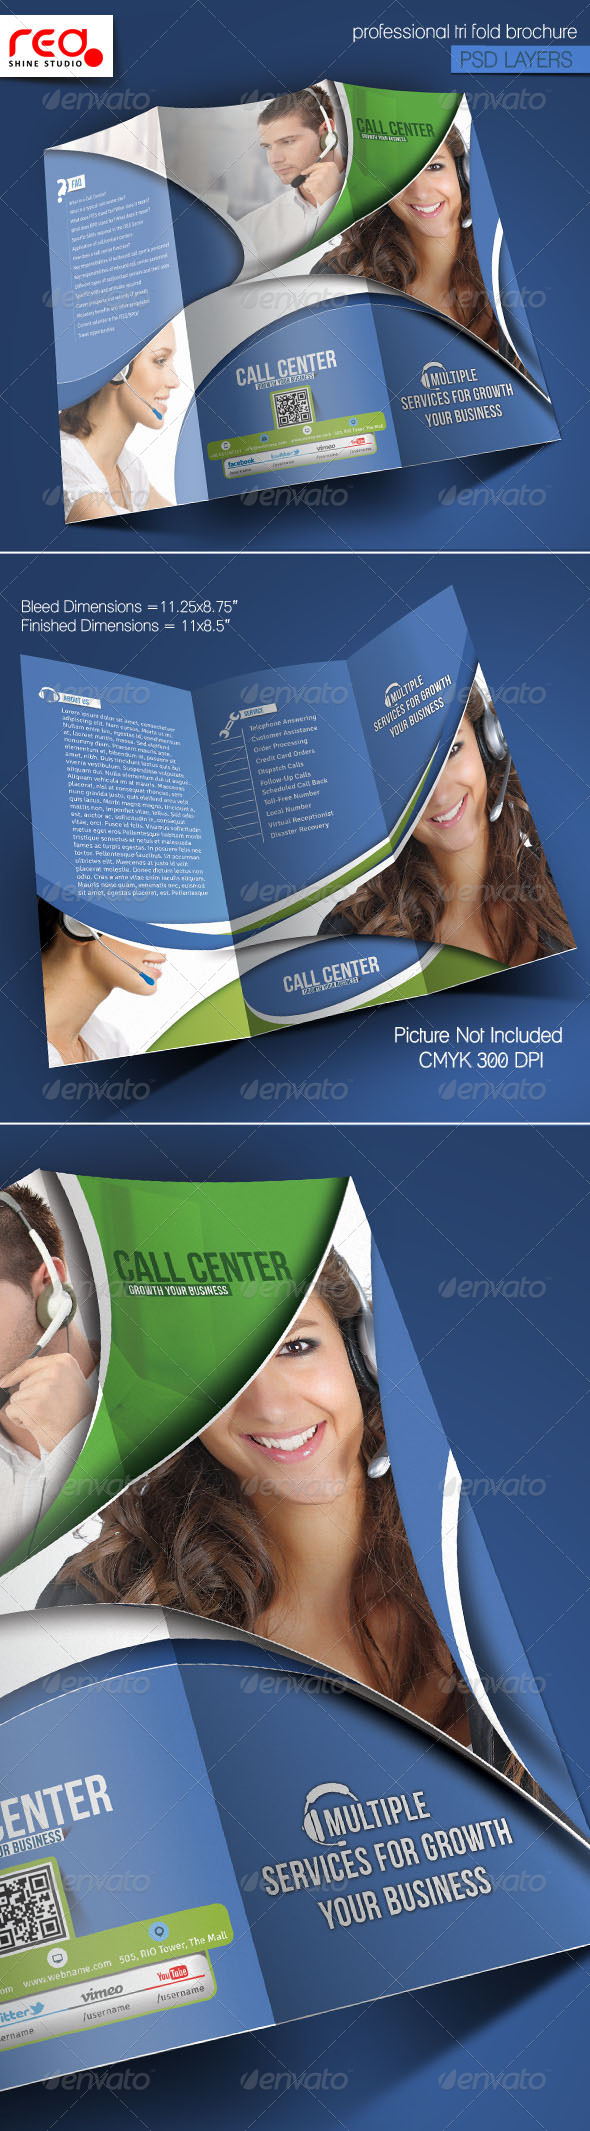 Customer Support Trifold Brochure Template -2 - Corporate Brochures